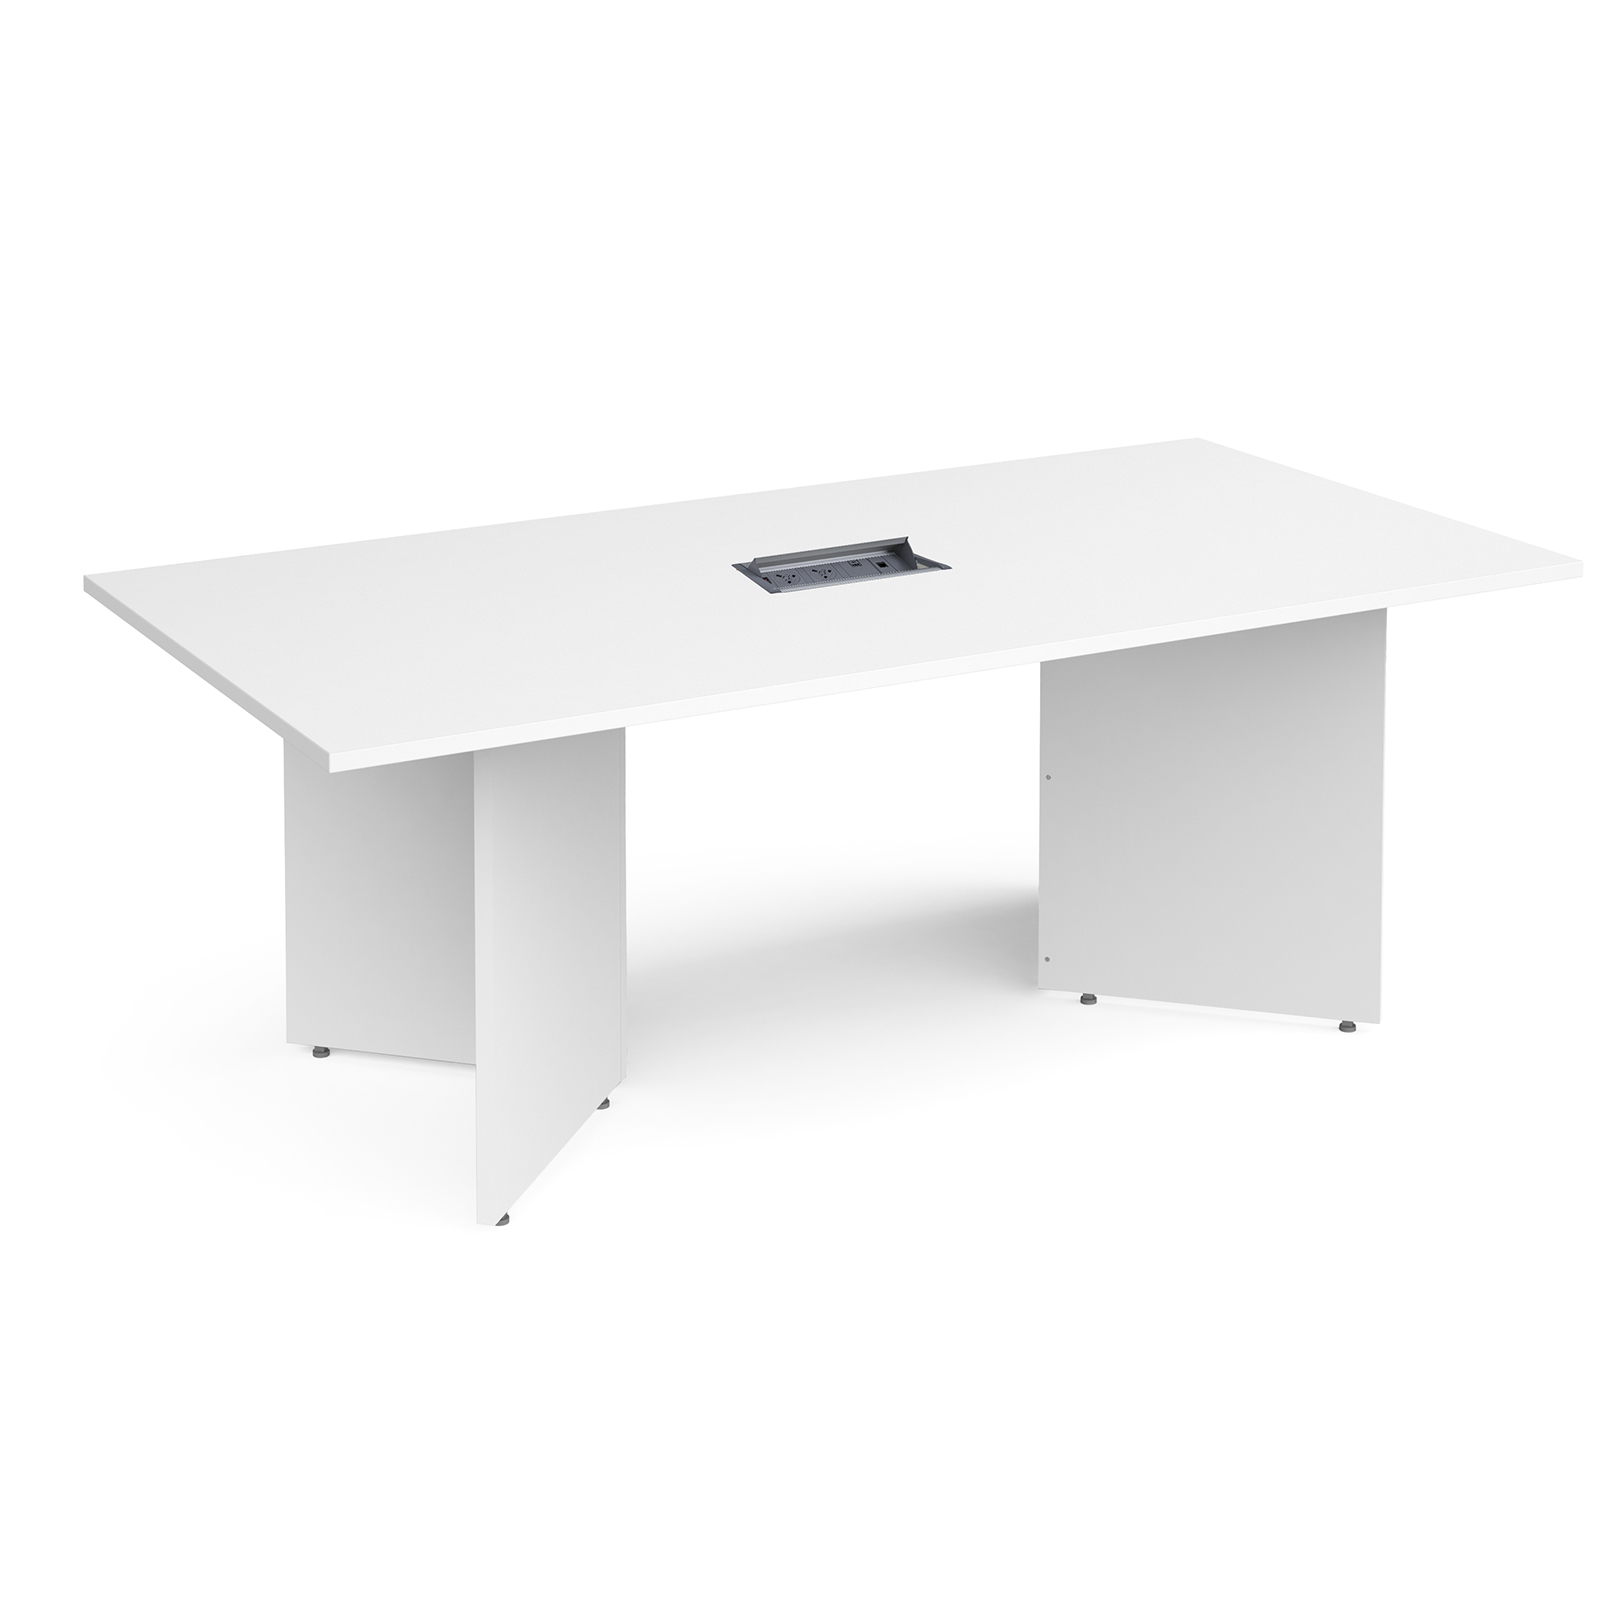 Boardroom / Meeting Arrow head leg rectangular boardroom table 2000mm x 1000mm in white with central cutout and Aero power module